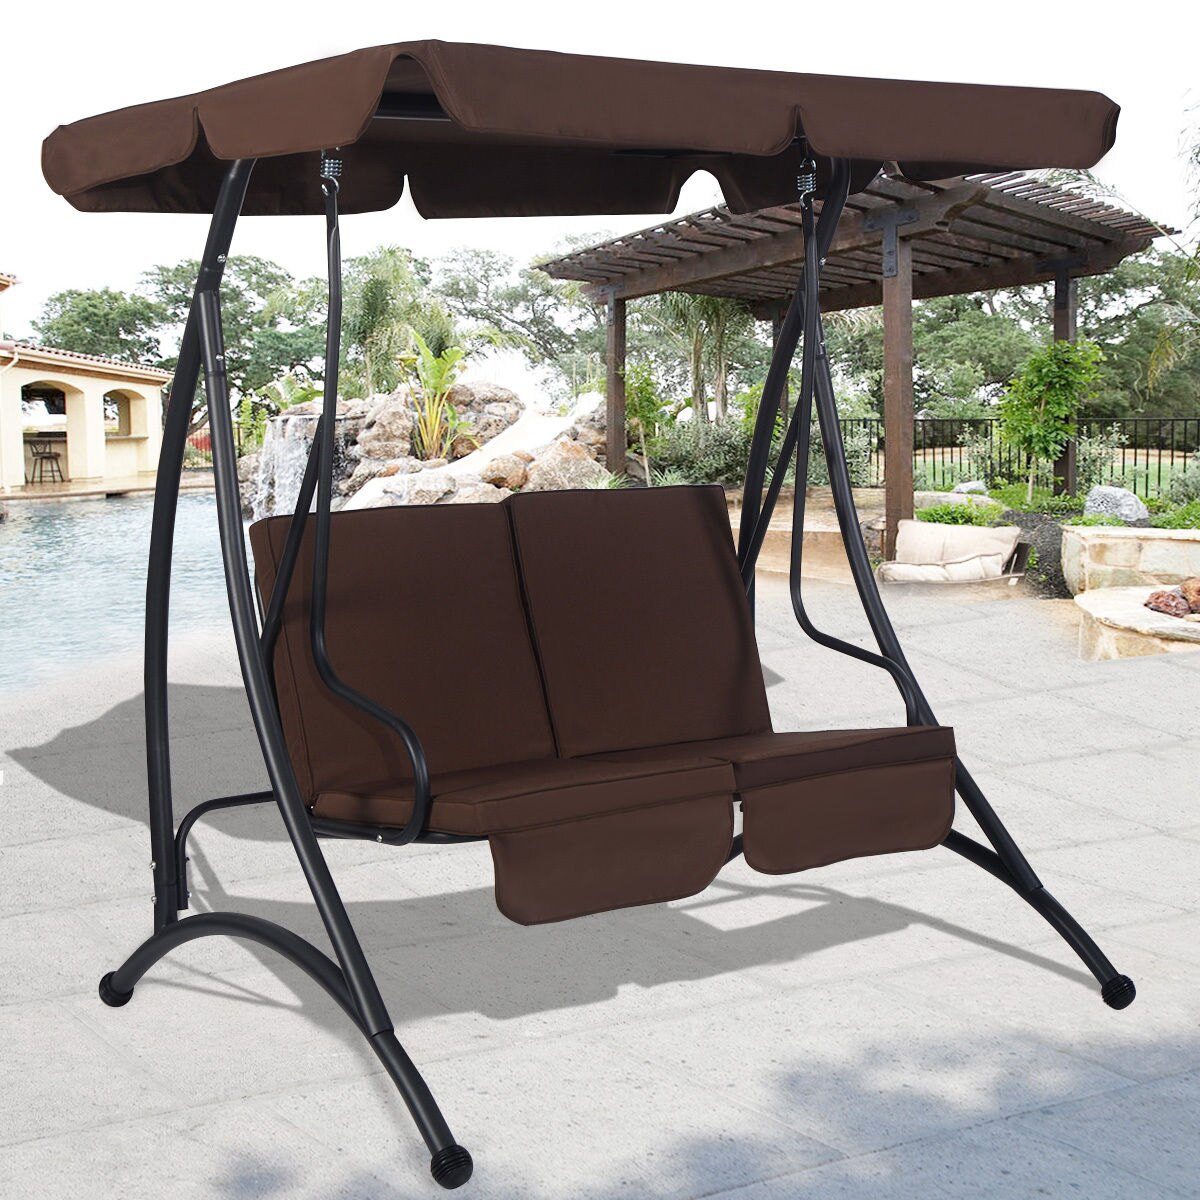 patio product brown garden overstock home canopy today person hammock shipping outdoor costway chair swing free